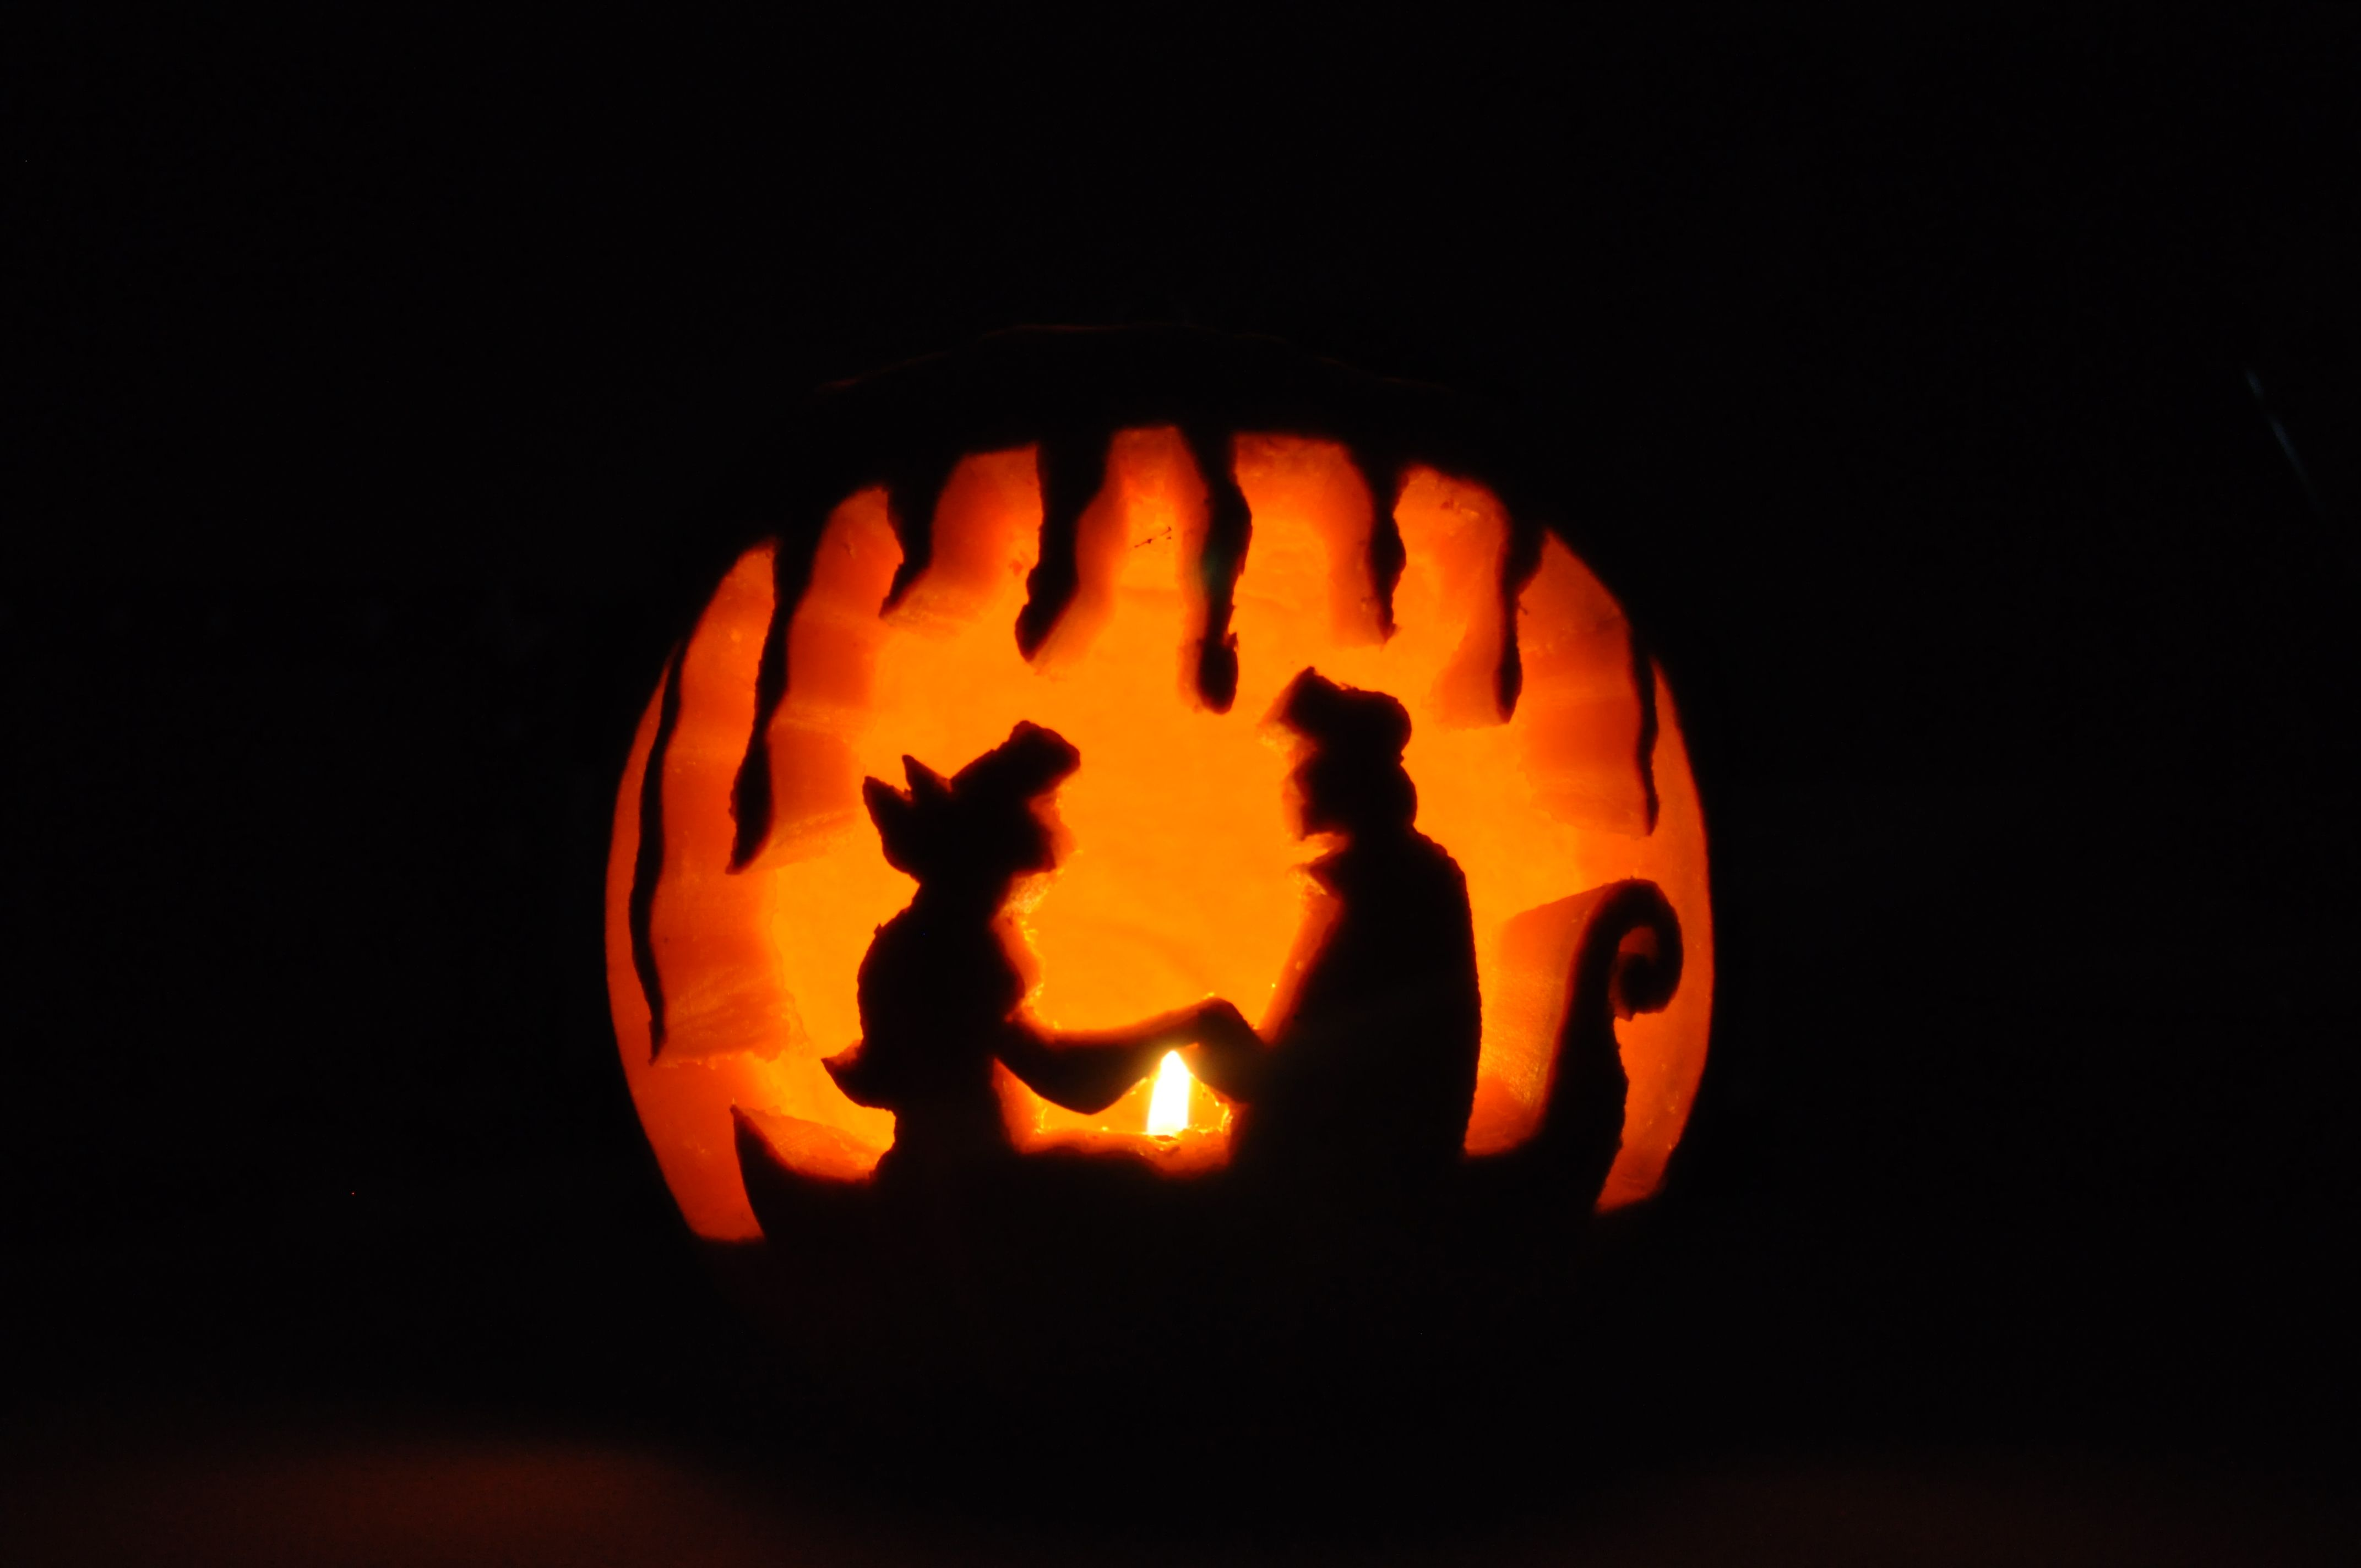 Kiss the girl disney ariel prince eric the little mermaid for Pumpkin carving silhouettes